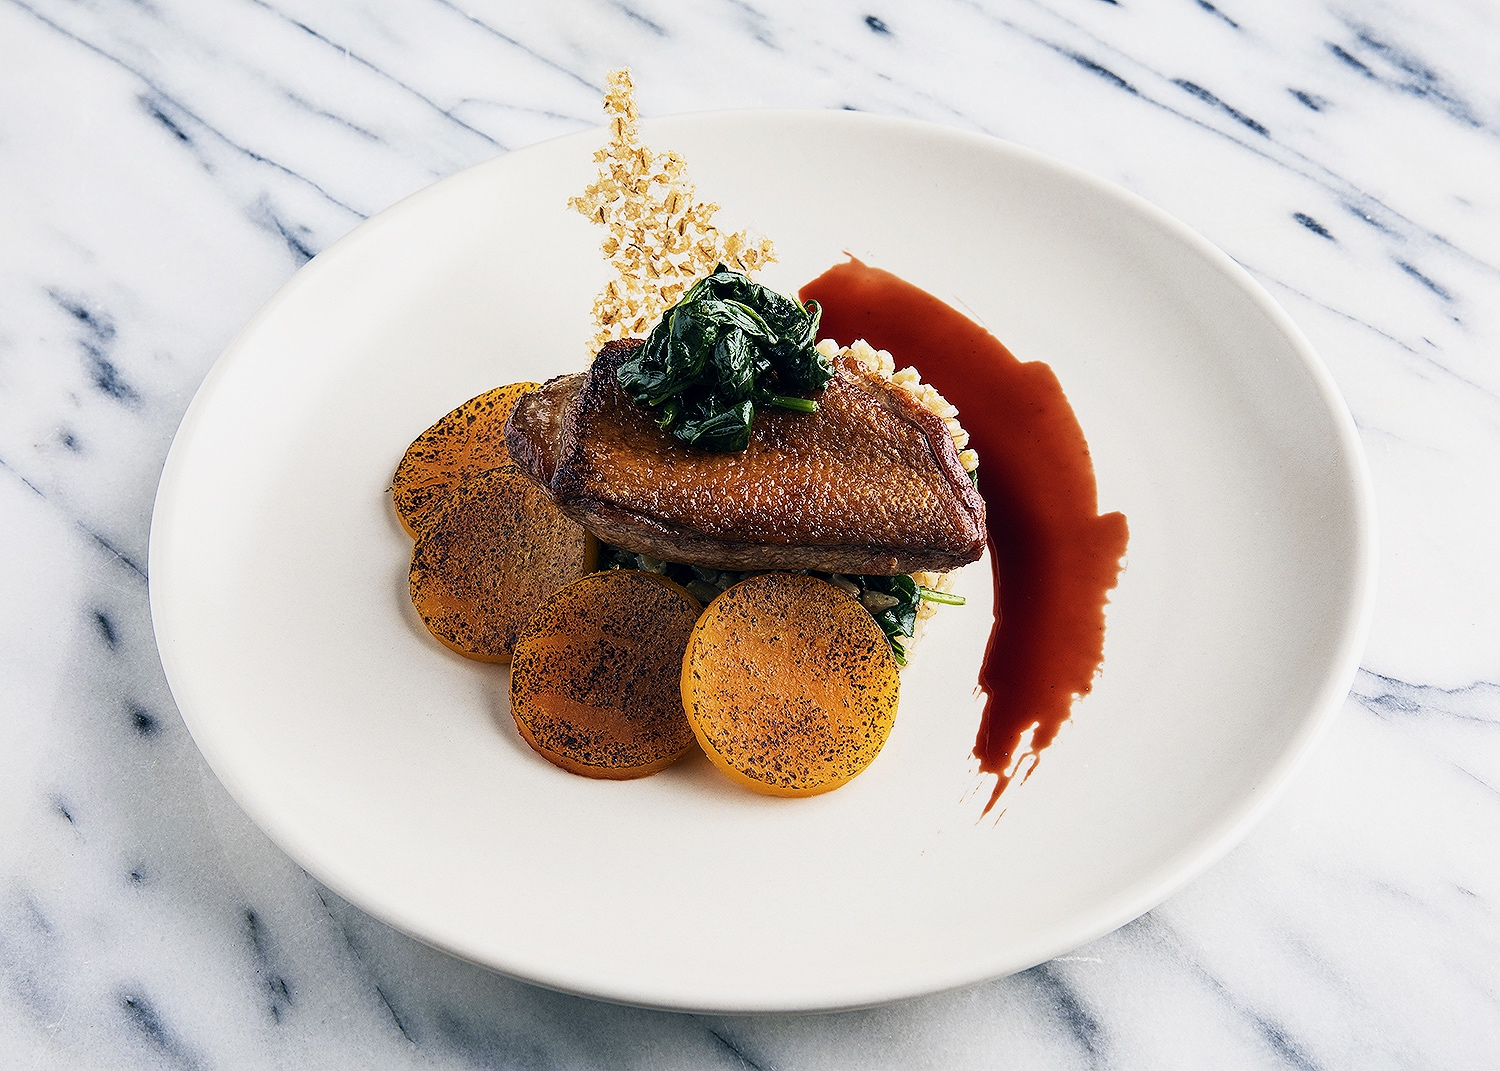 Smoked duck breast with barley chip, pickled pumpkin, spinach, and sherry reduction